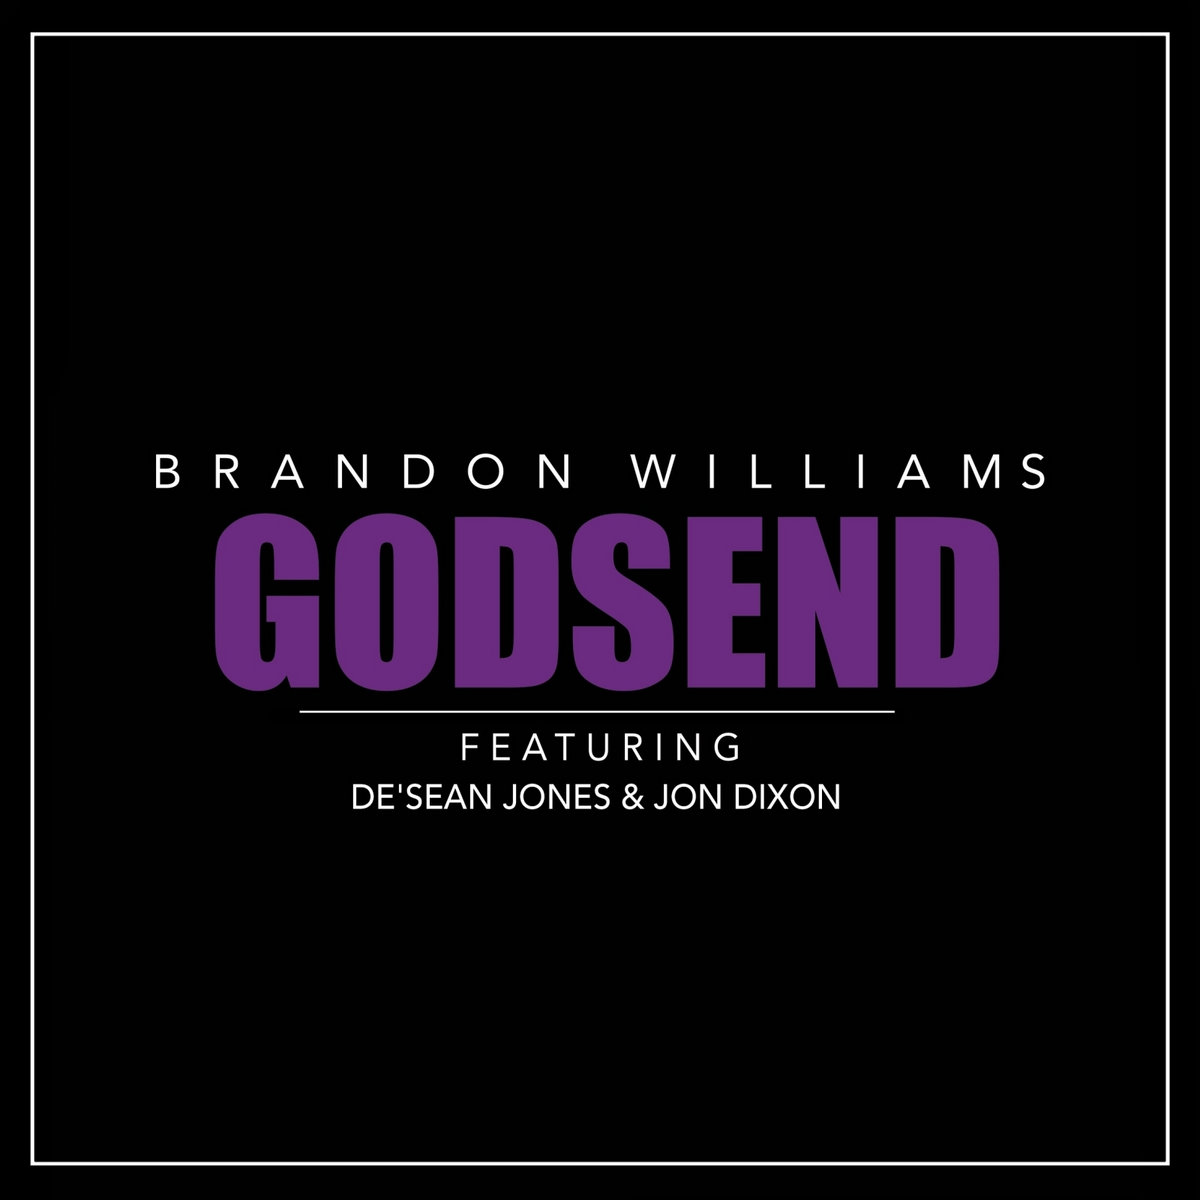 Godsend feat. De'Sean Jones & Jon Dixon by Brandon Williams